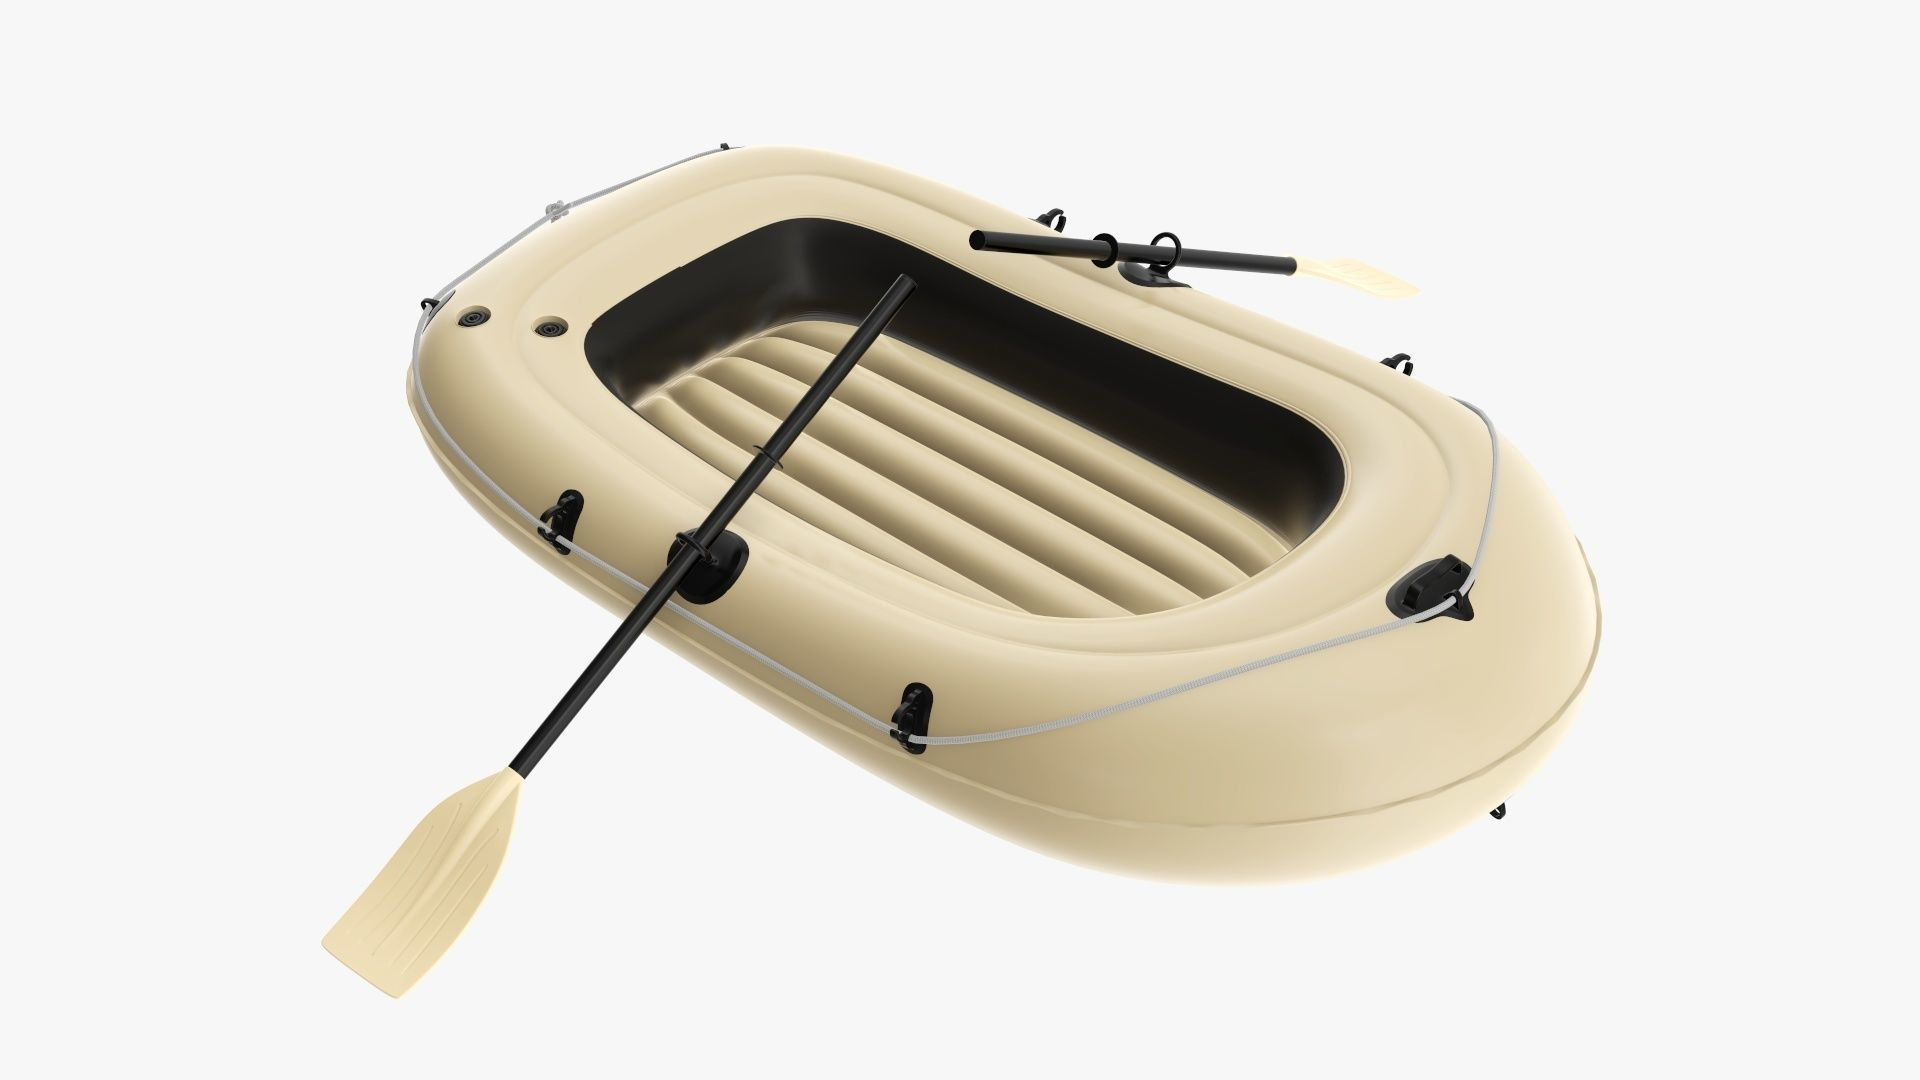 Boat inflatable 05